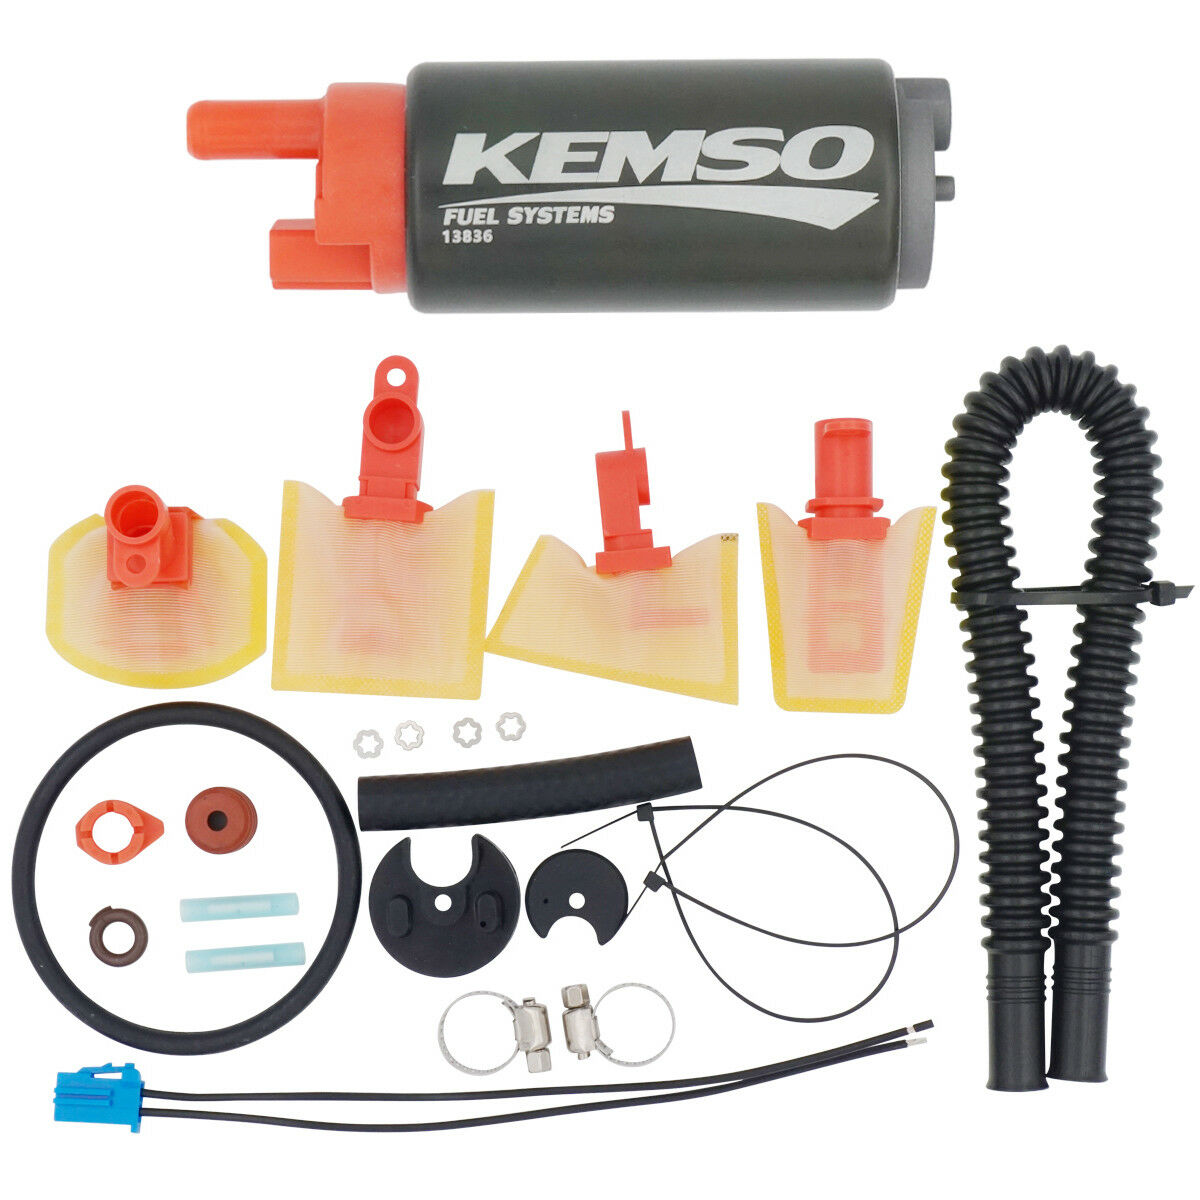 Kemso Intank Fuel Pump For Yamaha Outboard F150 2000 2018 2081 T50 Wiring 1 Of 6free Shipping See More